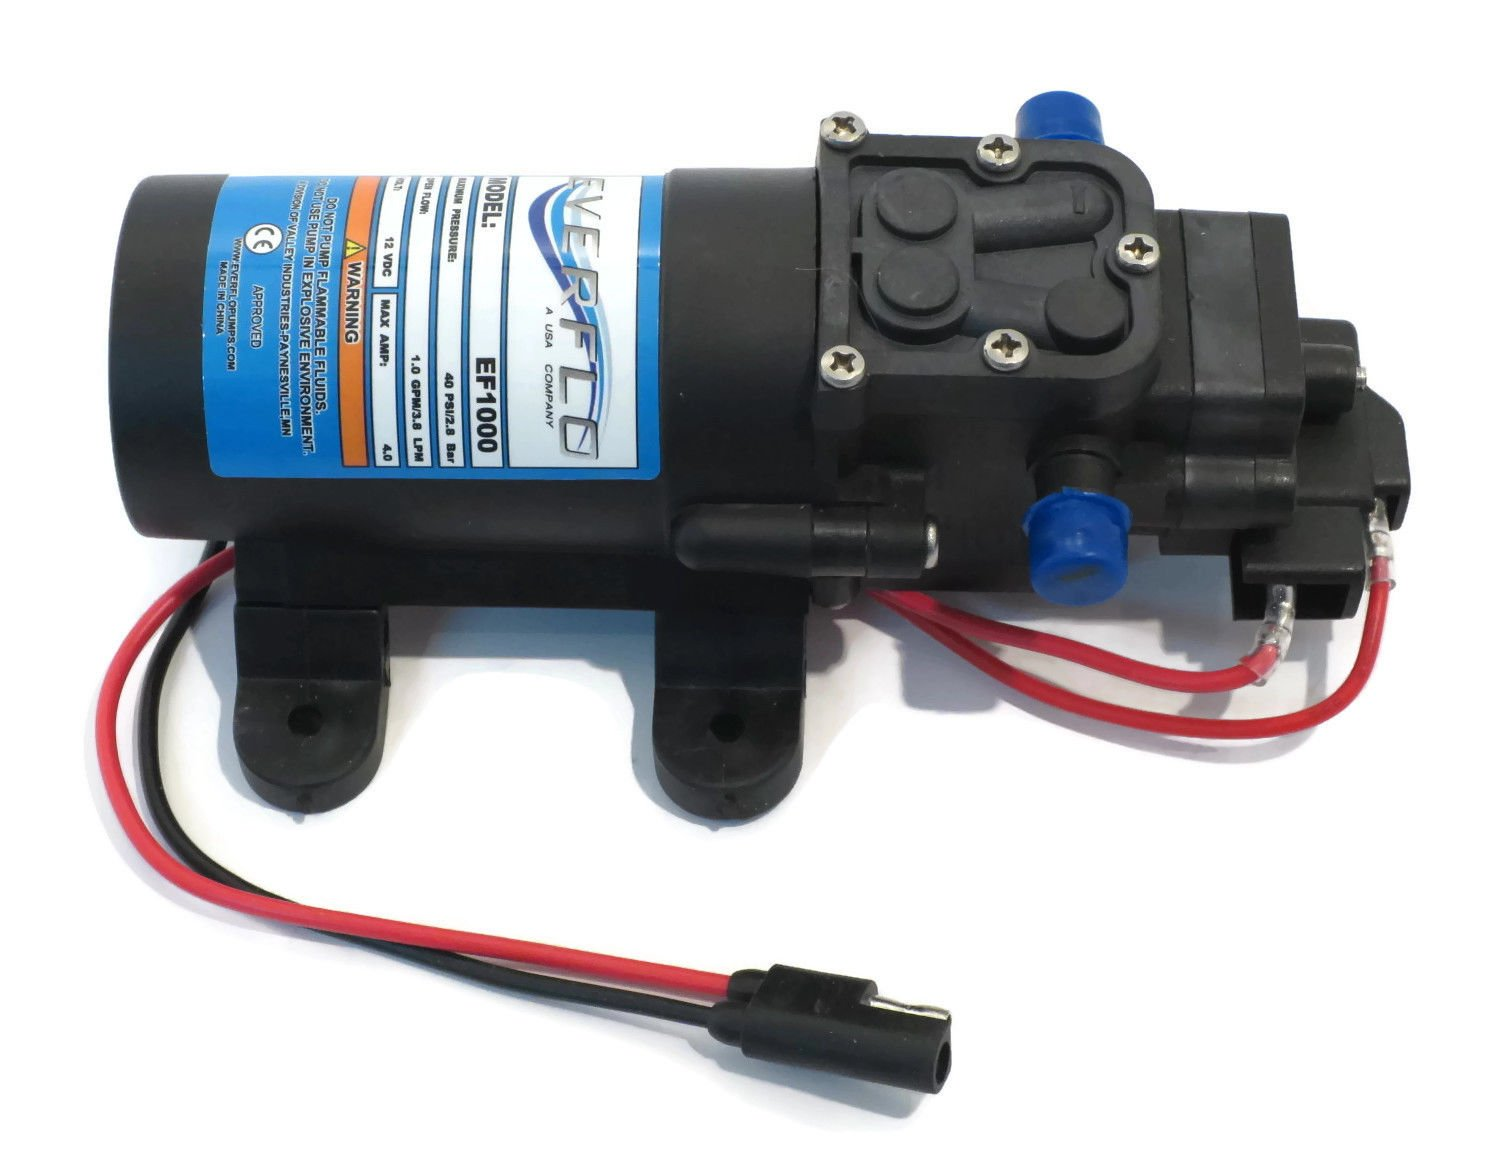 New 1.0 GPM 40 psi 12 Volt Diaphragm ON Demand WATER PUMP w/ Wire Power Harness by The ROP Shop by The ROP Shop (Image #6)